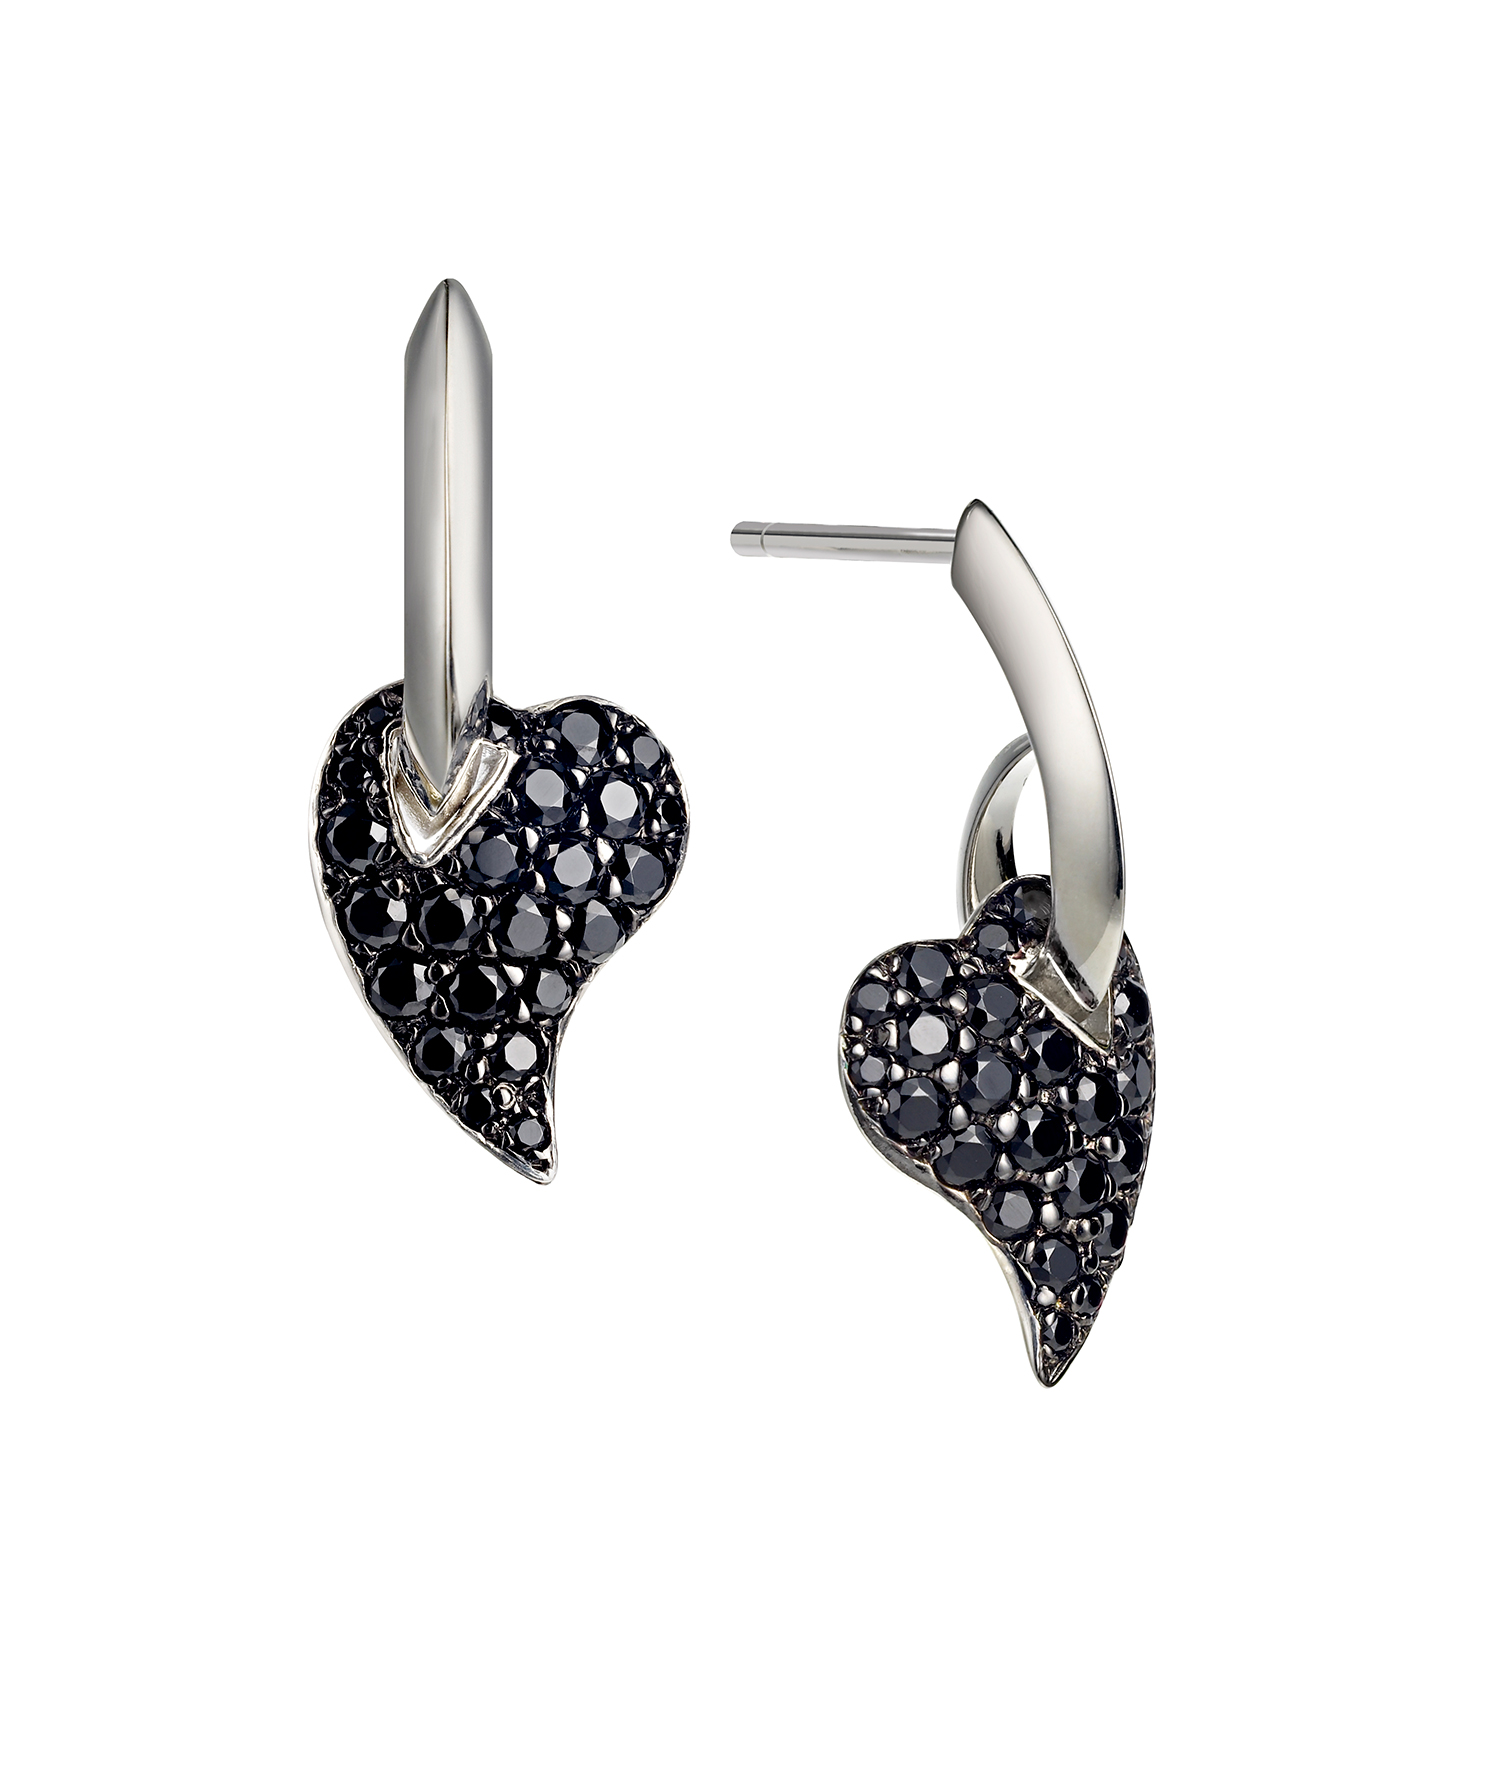 heart-shaped earrings set with black gemstones